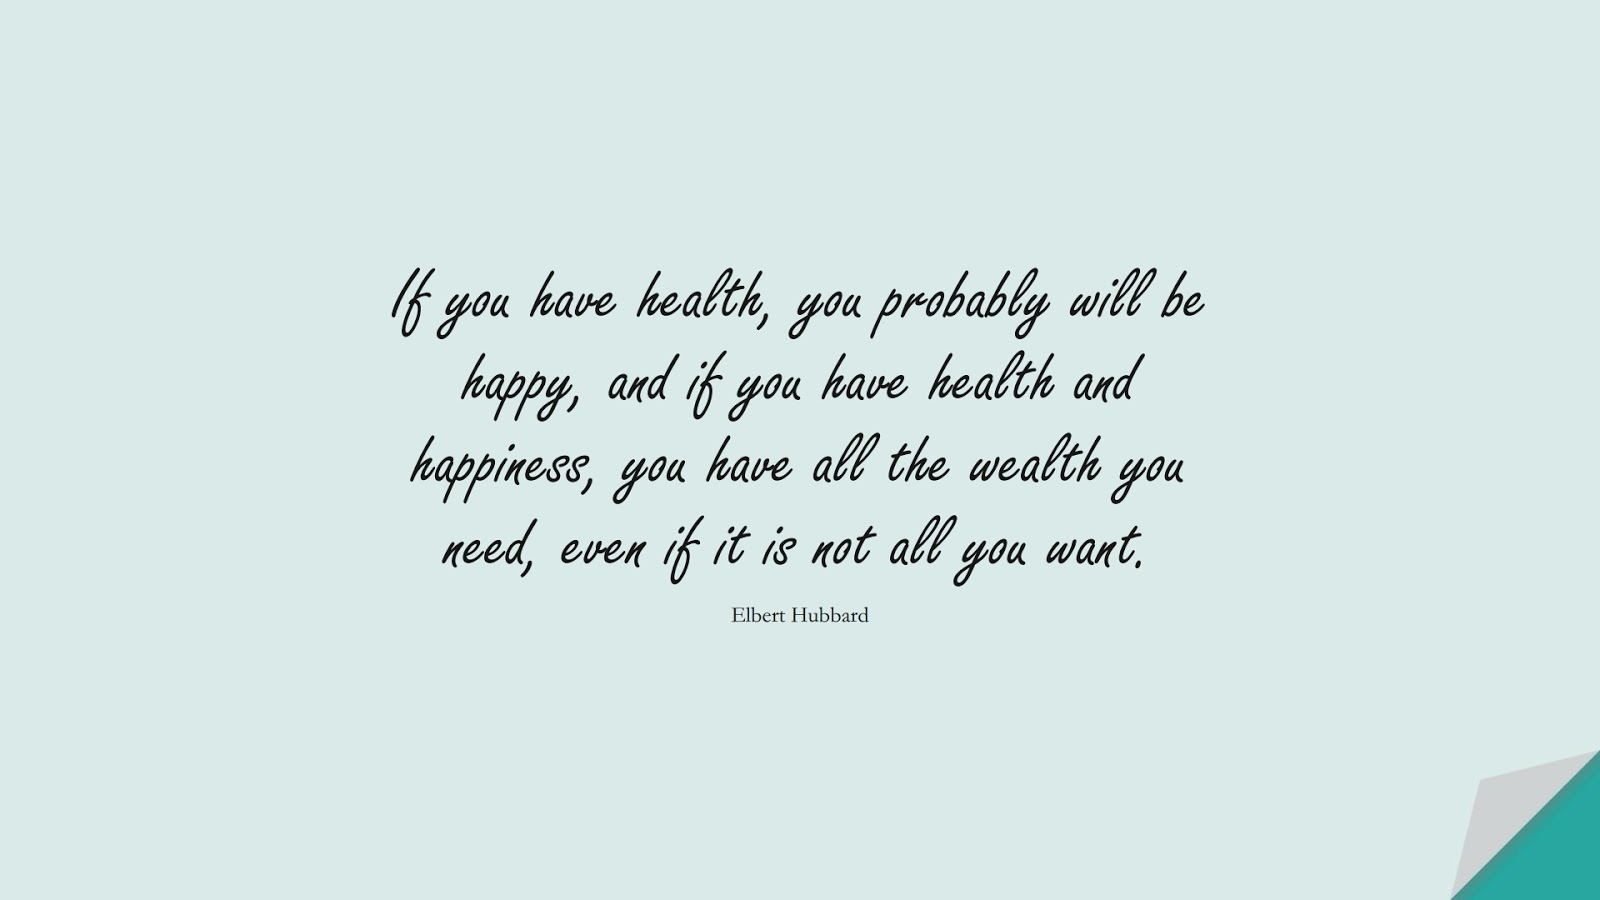 If you have health, you probably will be happy, and if you have health and happiness, you have all the wealth you need, even if it is not all you want. (Elbert Hubbard);  #HealthQuotes